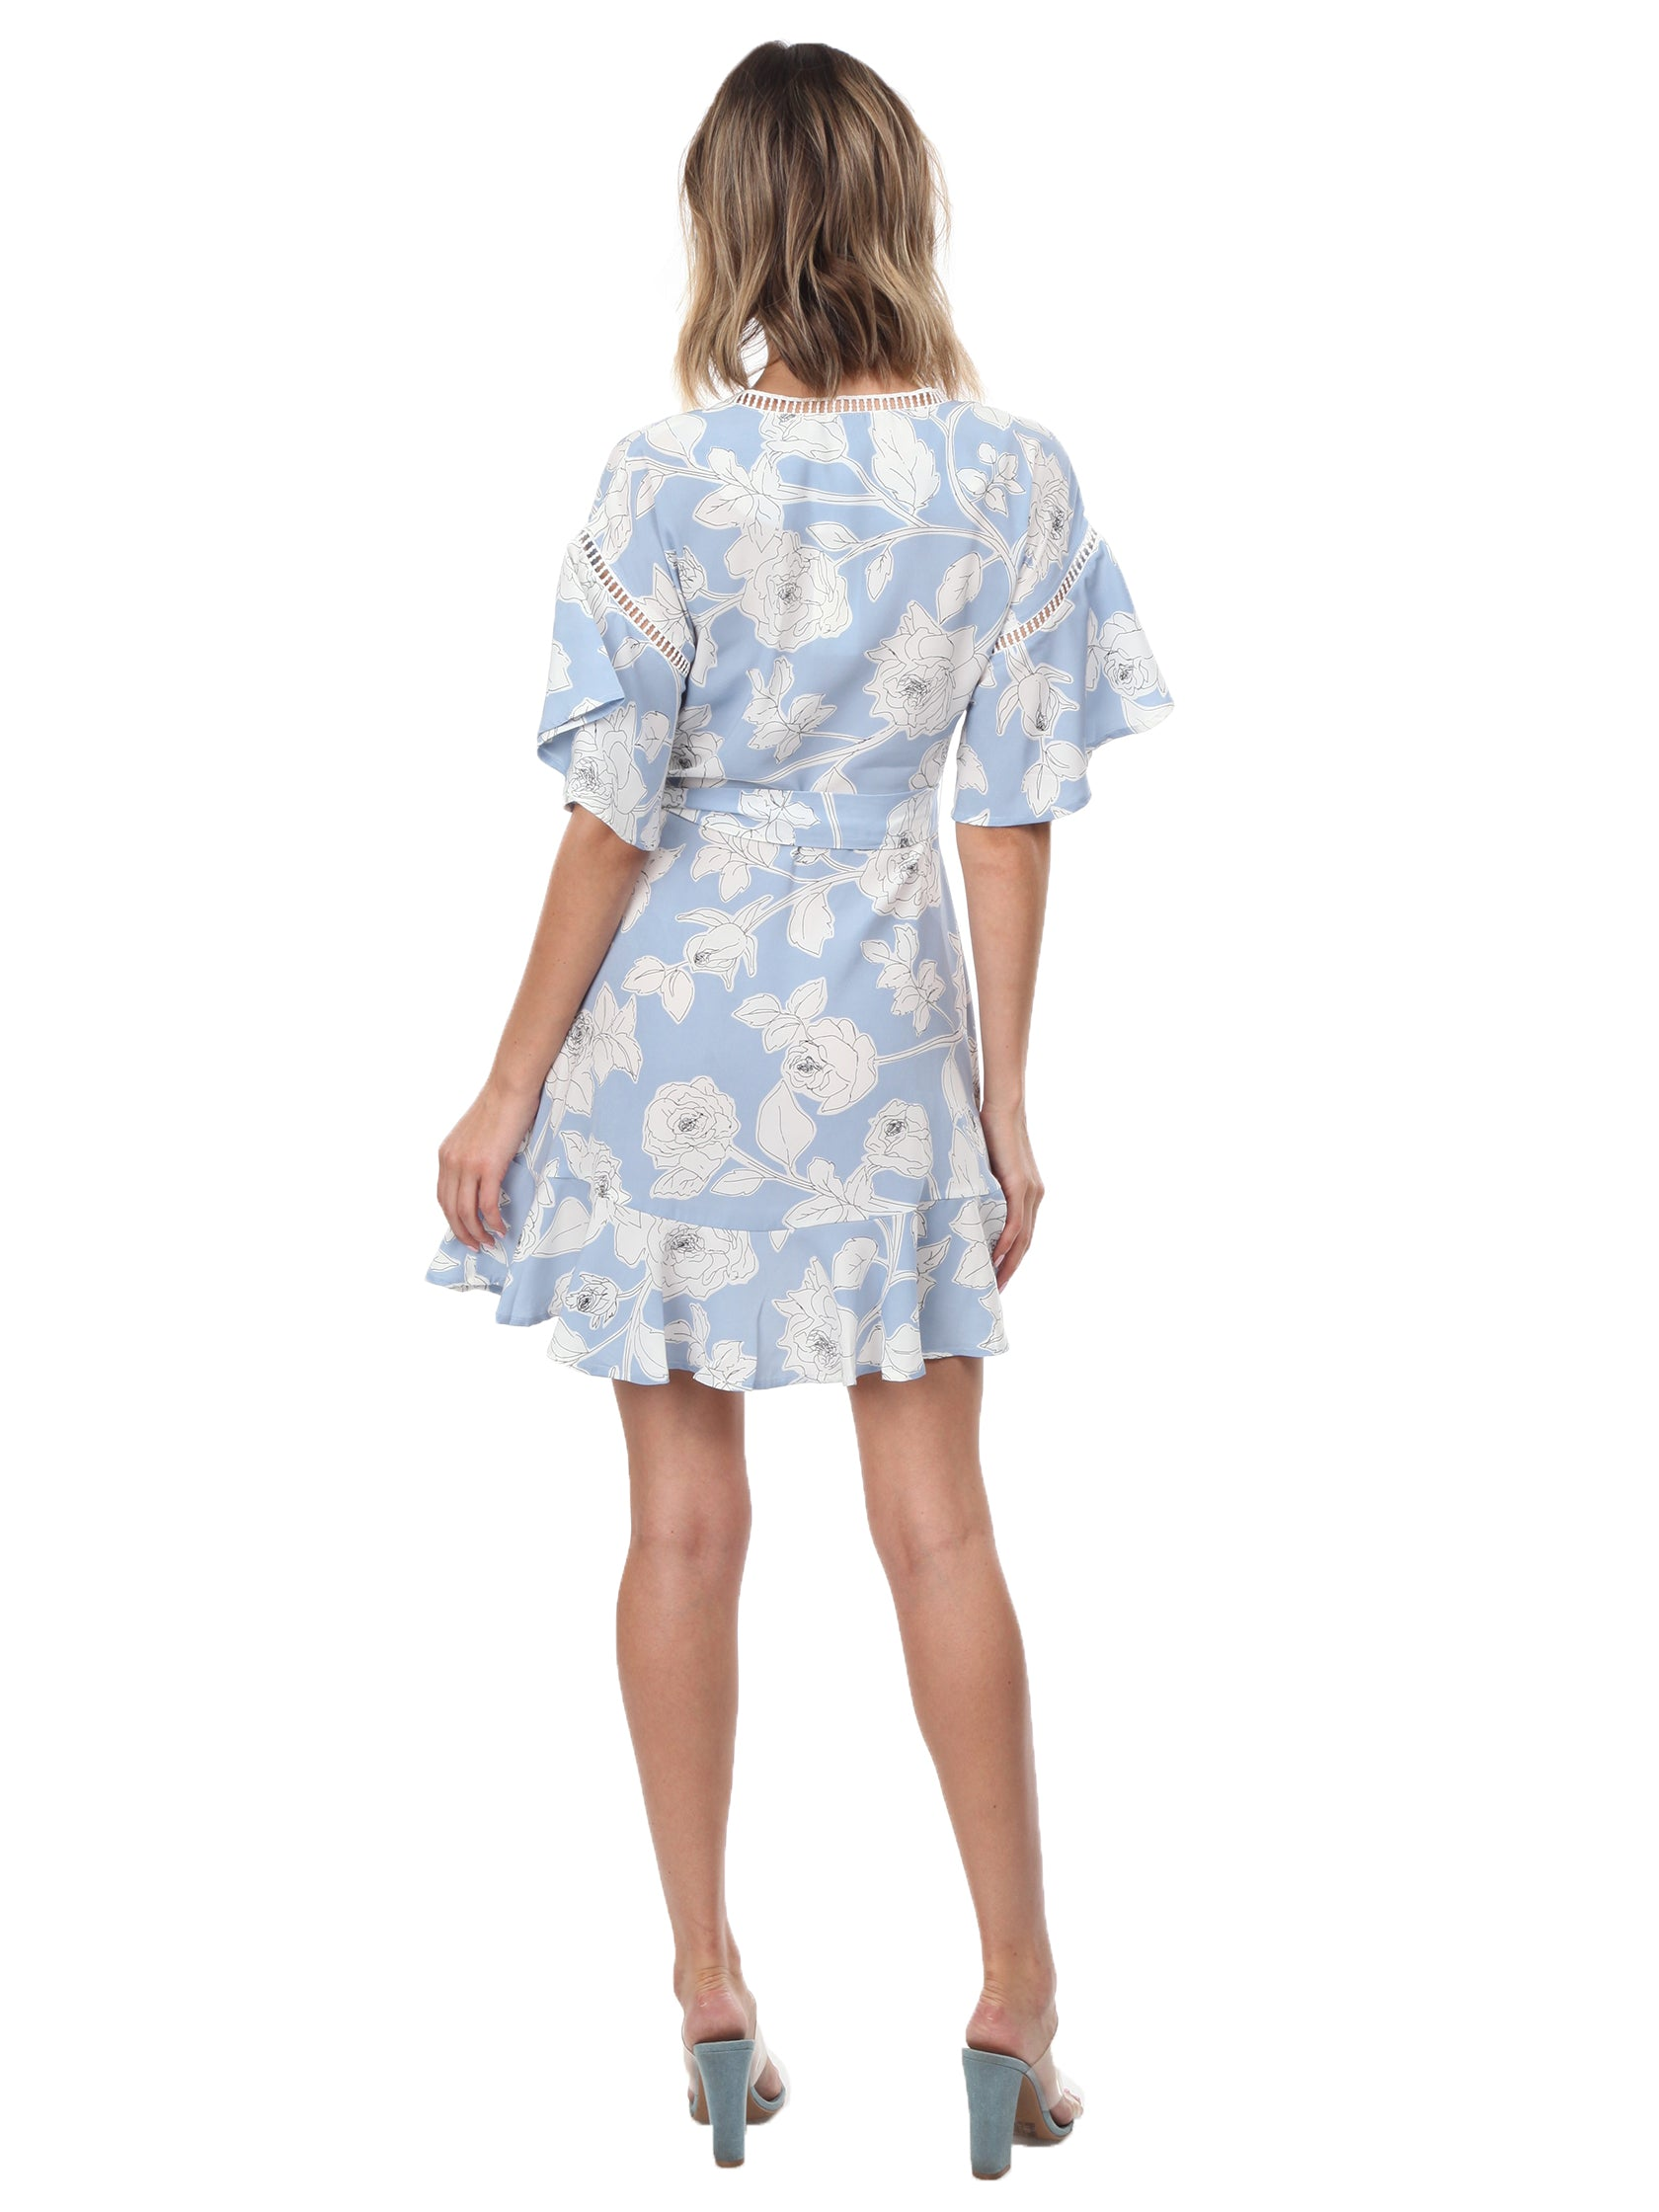 Women wearing a dress rental from Moon River called Floral Printed Wrap Dress